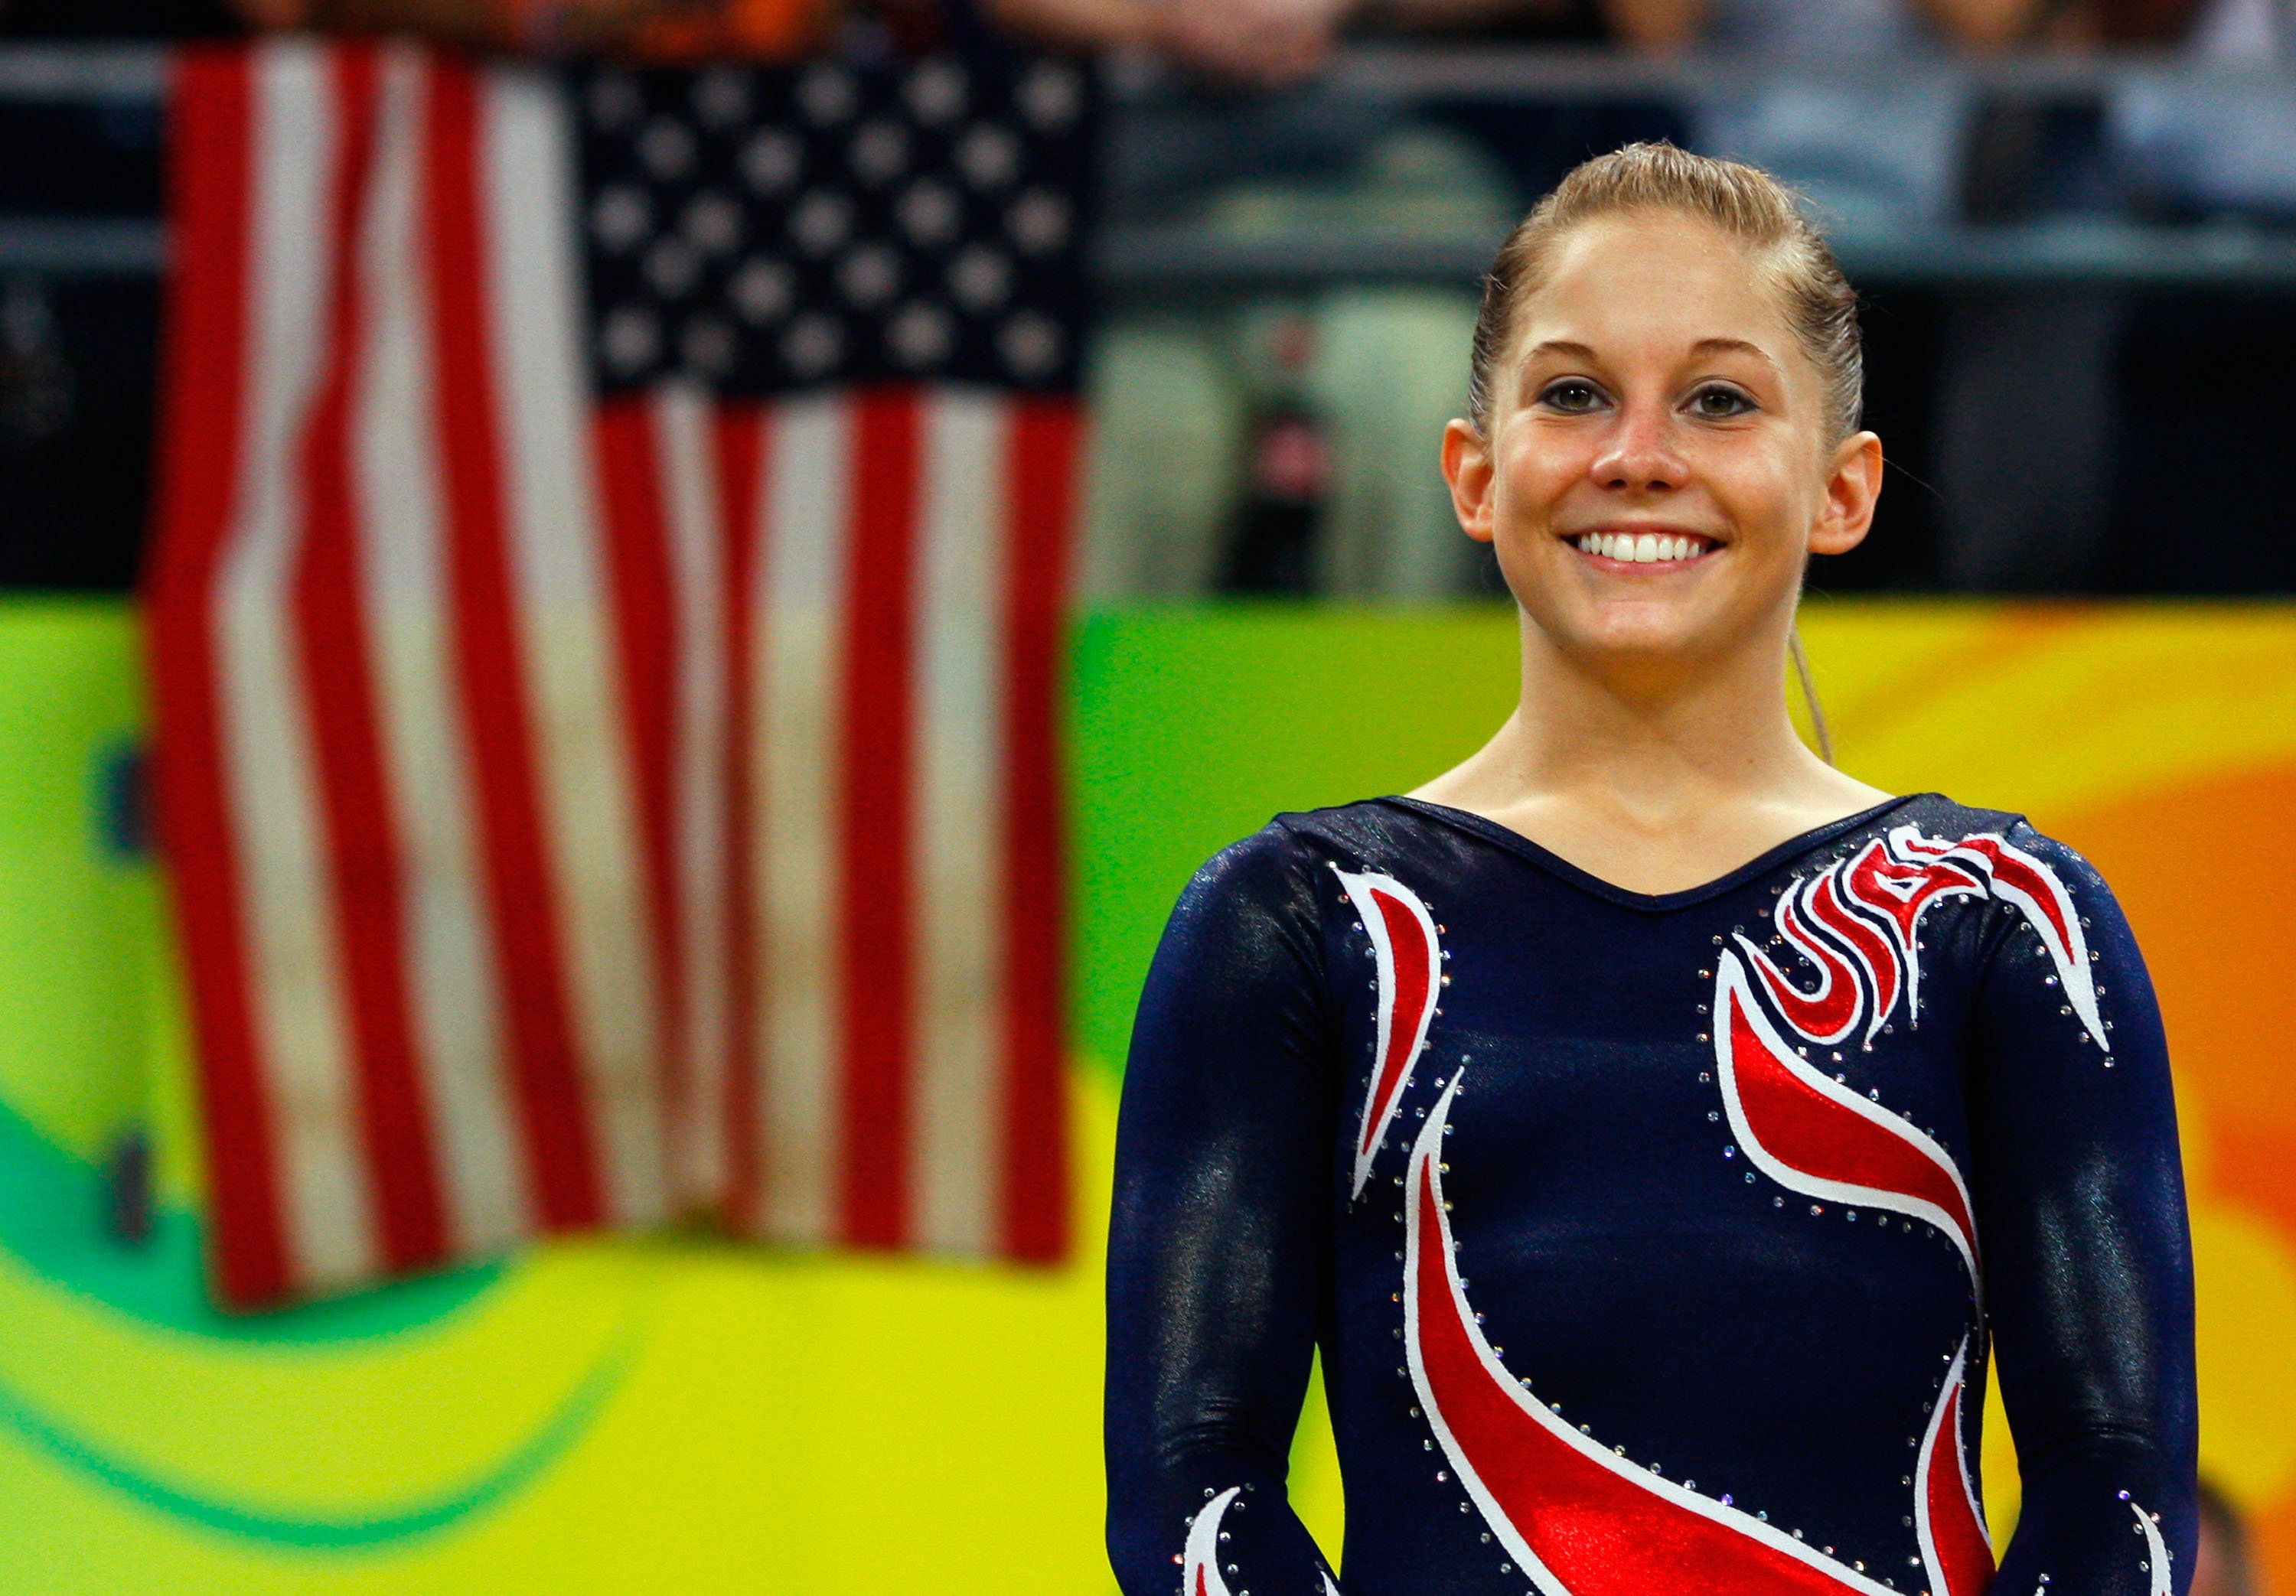 Olympian Shawn Johnson opens up about miscarriage in 'raw' and 'powerful' video